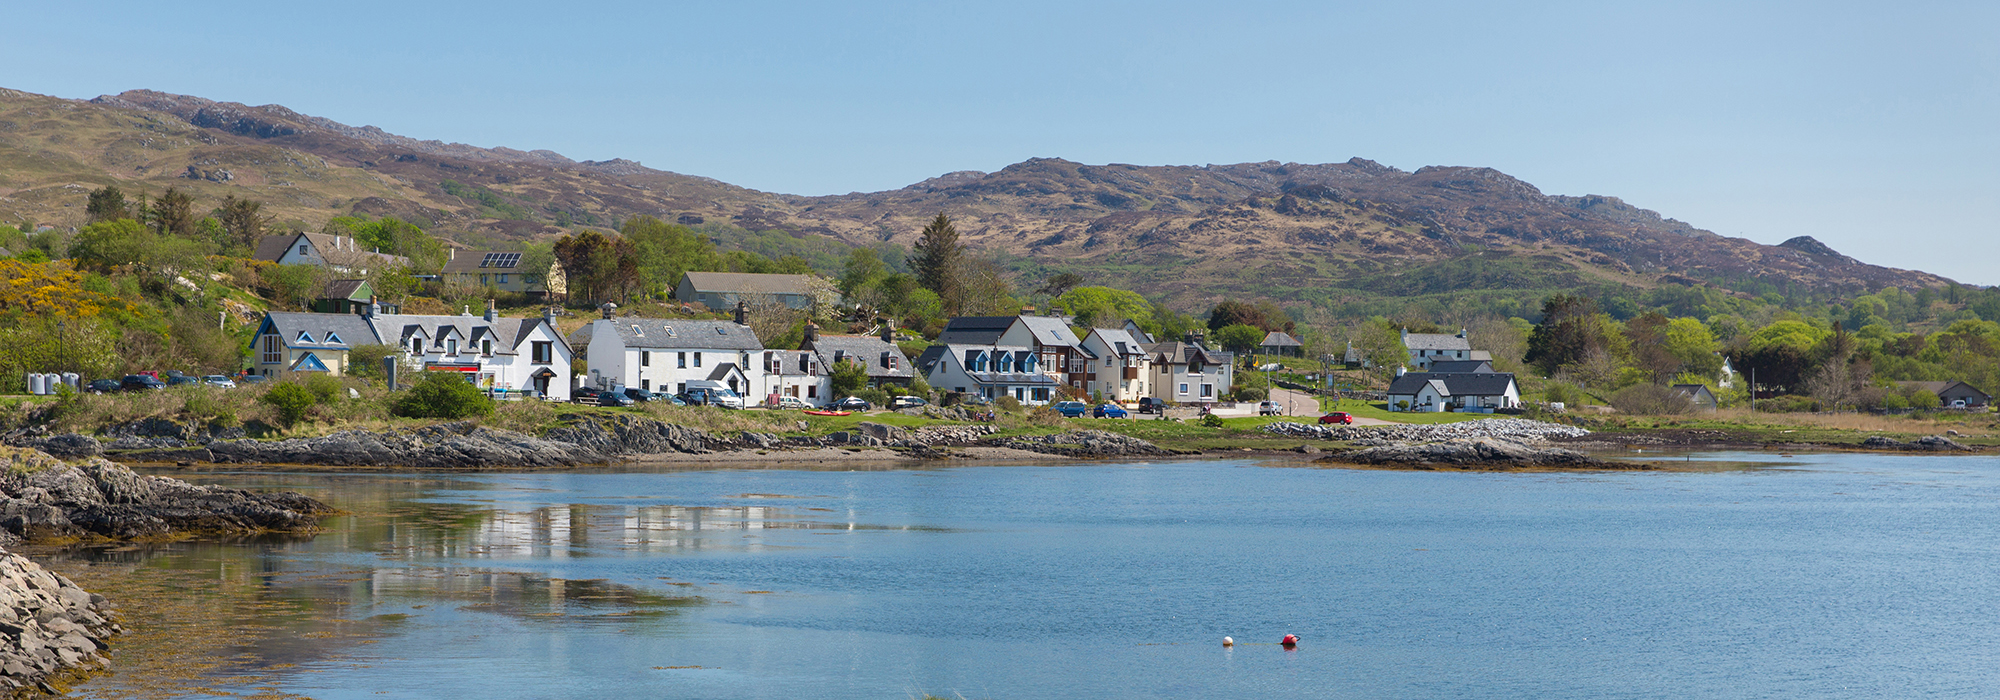 Village-Arisaig-d-500